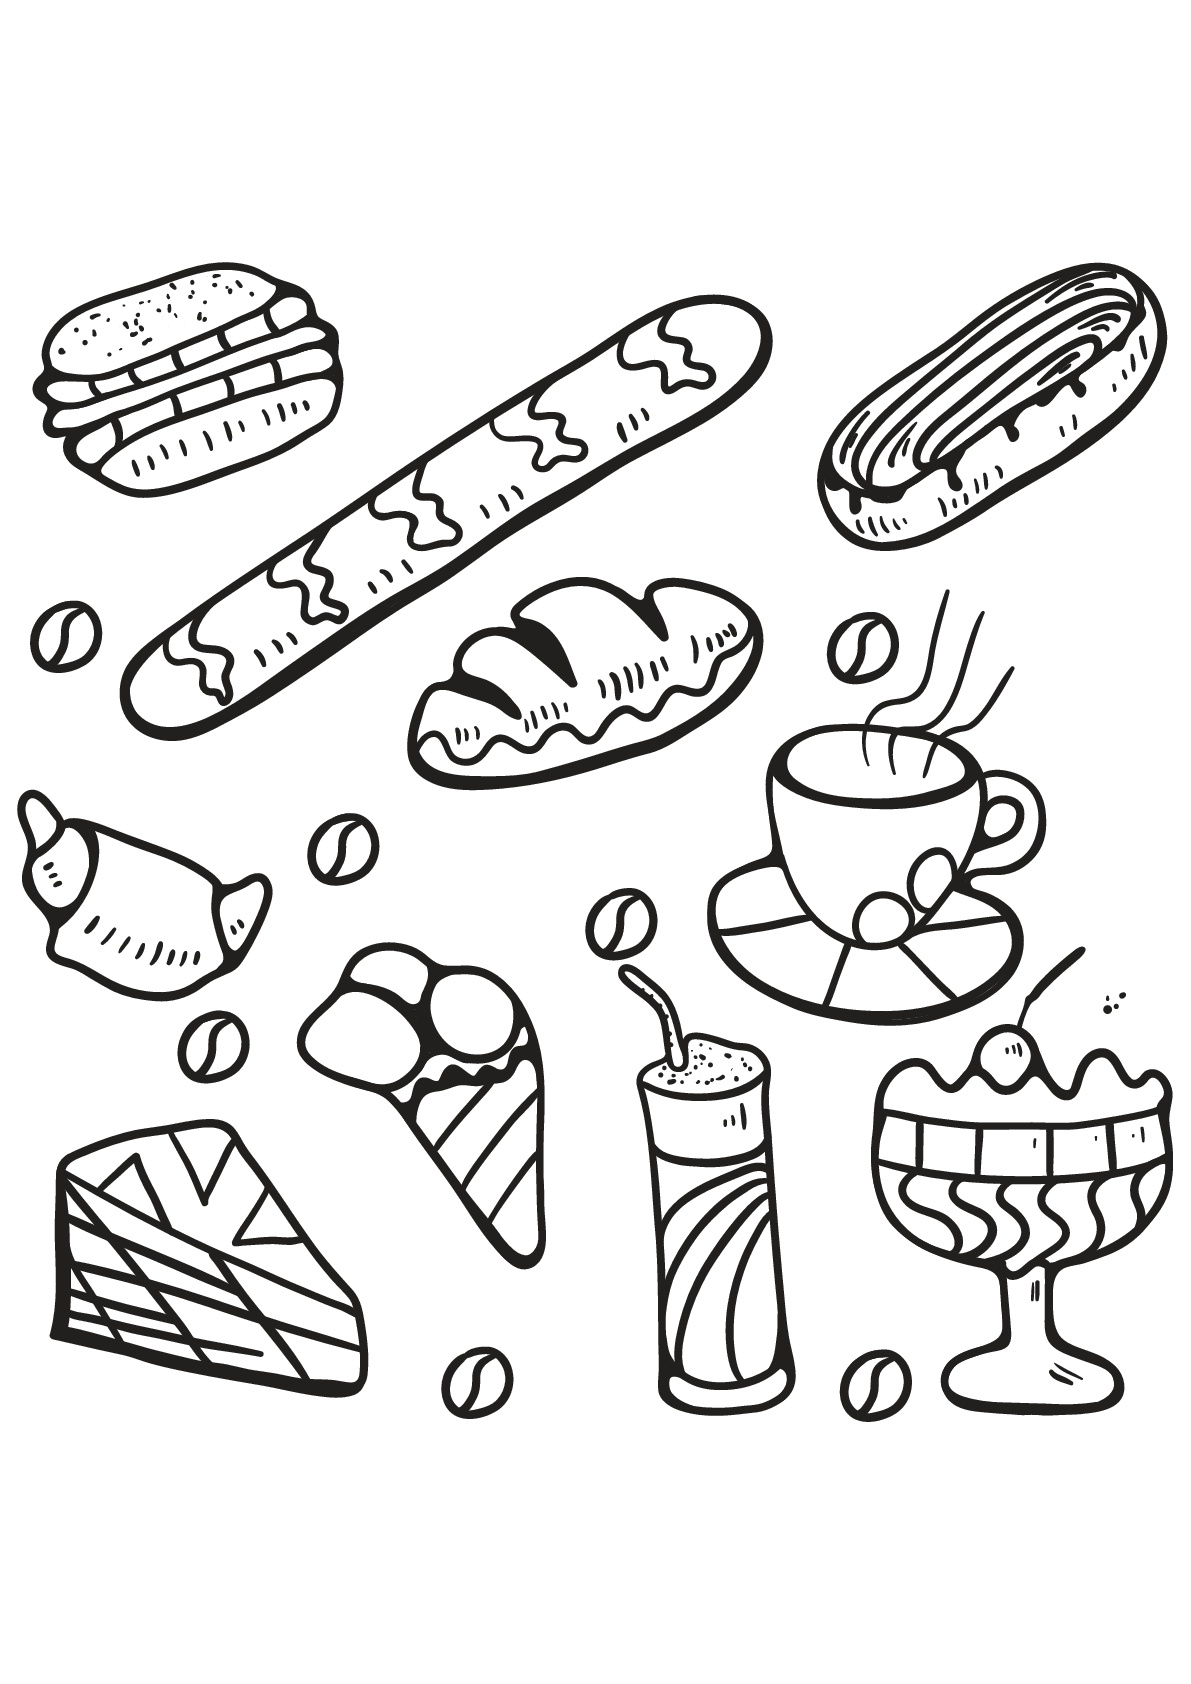 Cupcakes and cakes - Coloring pages for adults